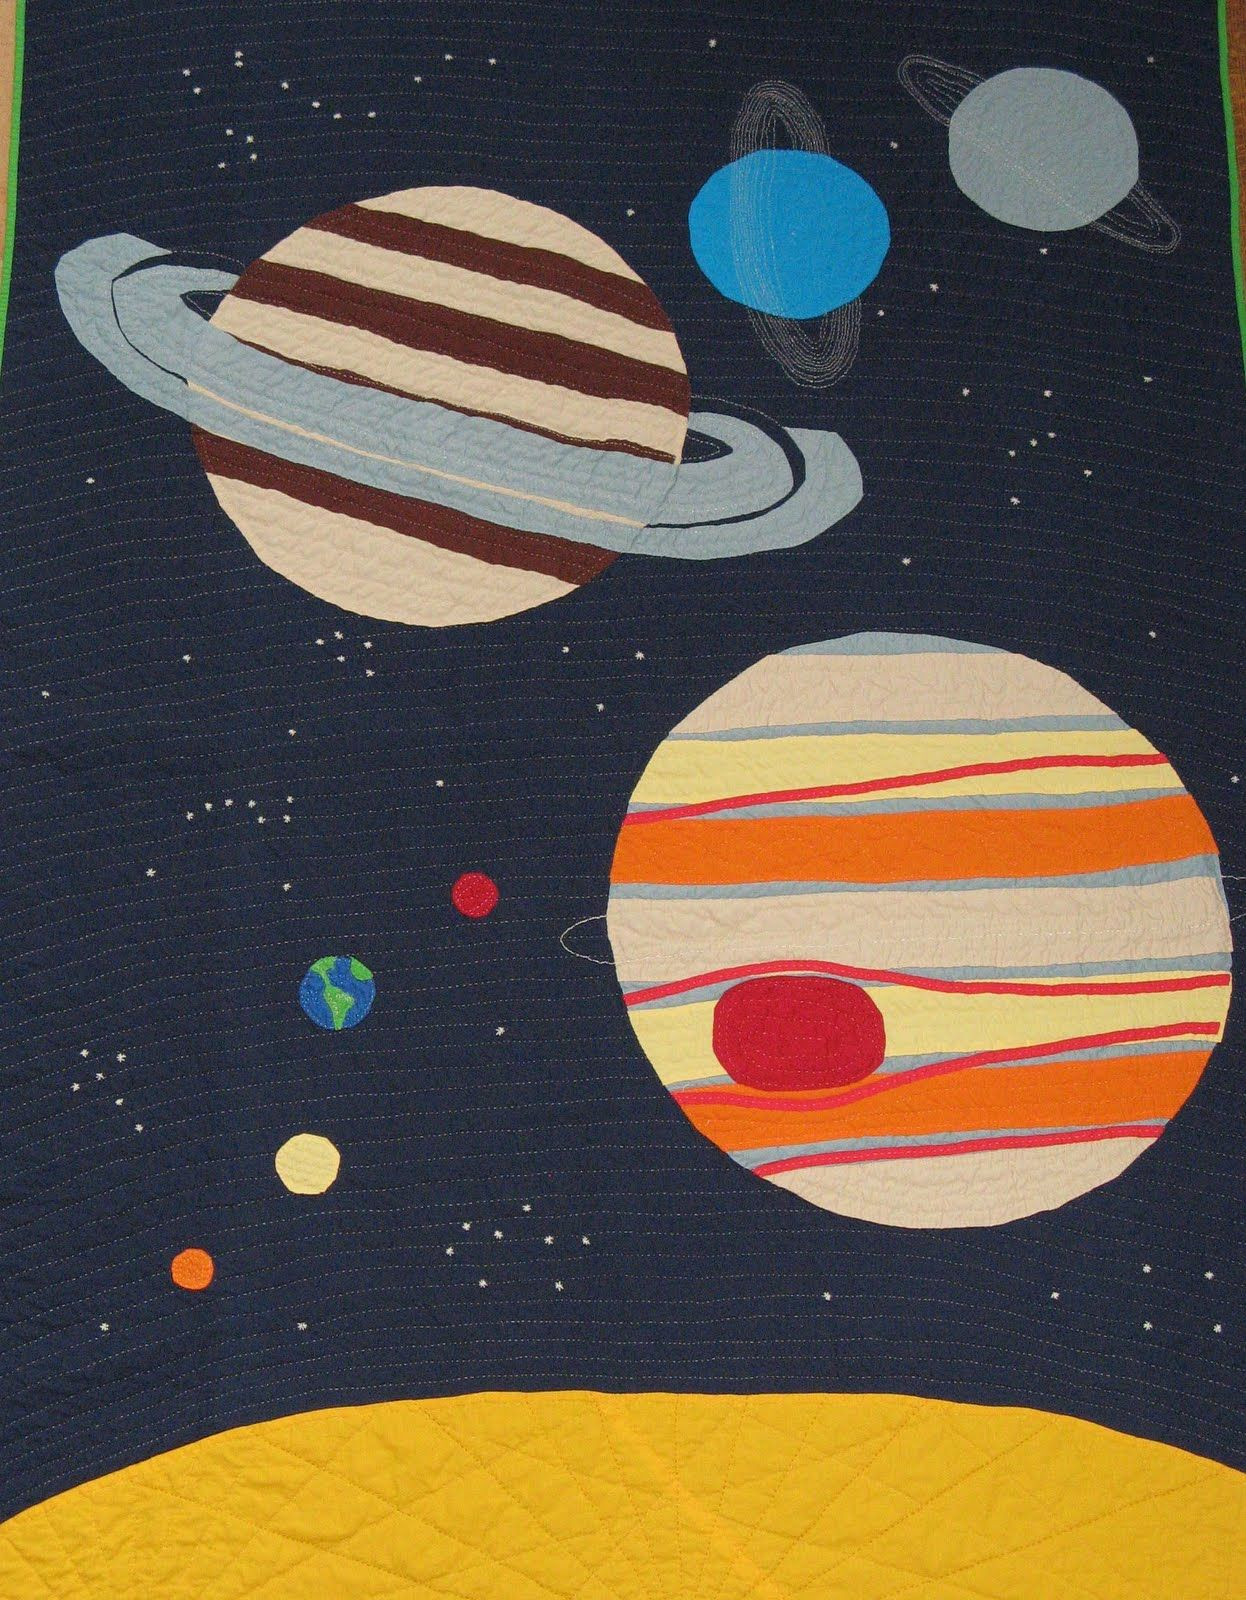 Handmade space quilt love it moon stars planets pinterest for Space quilt pattern